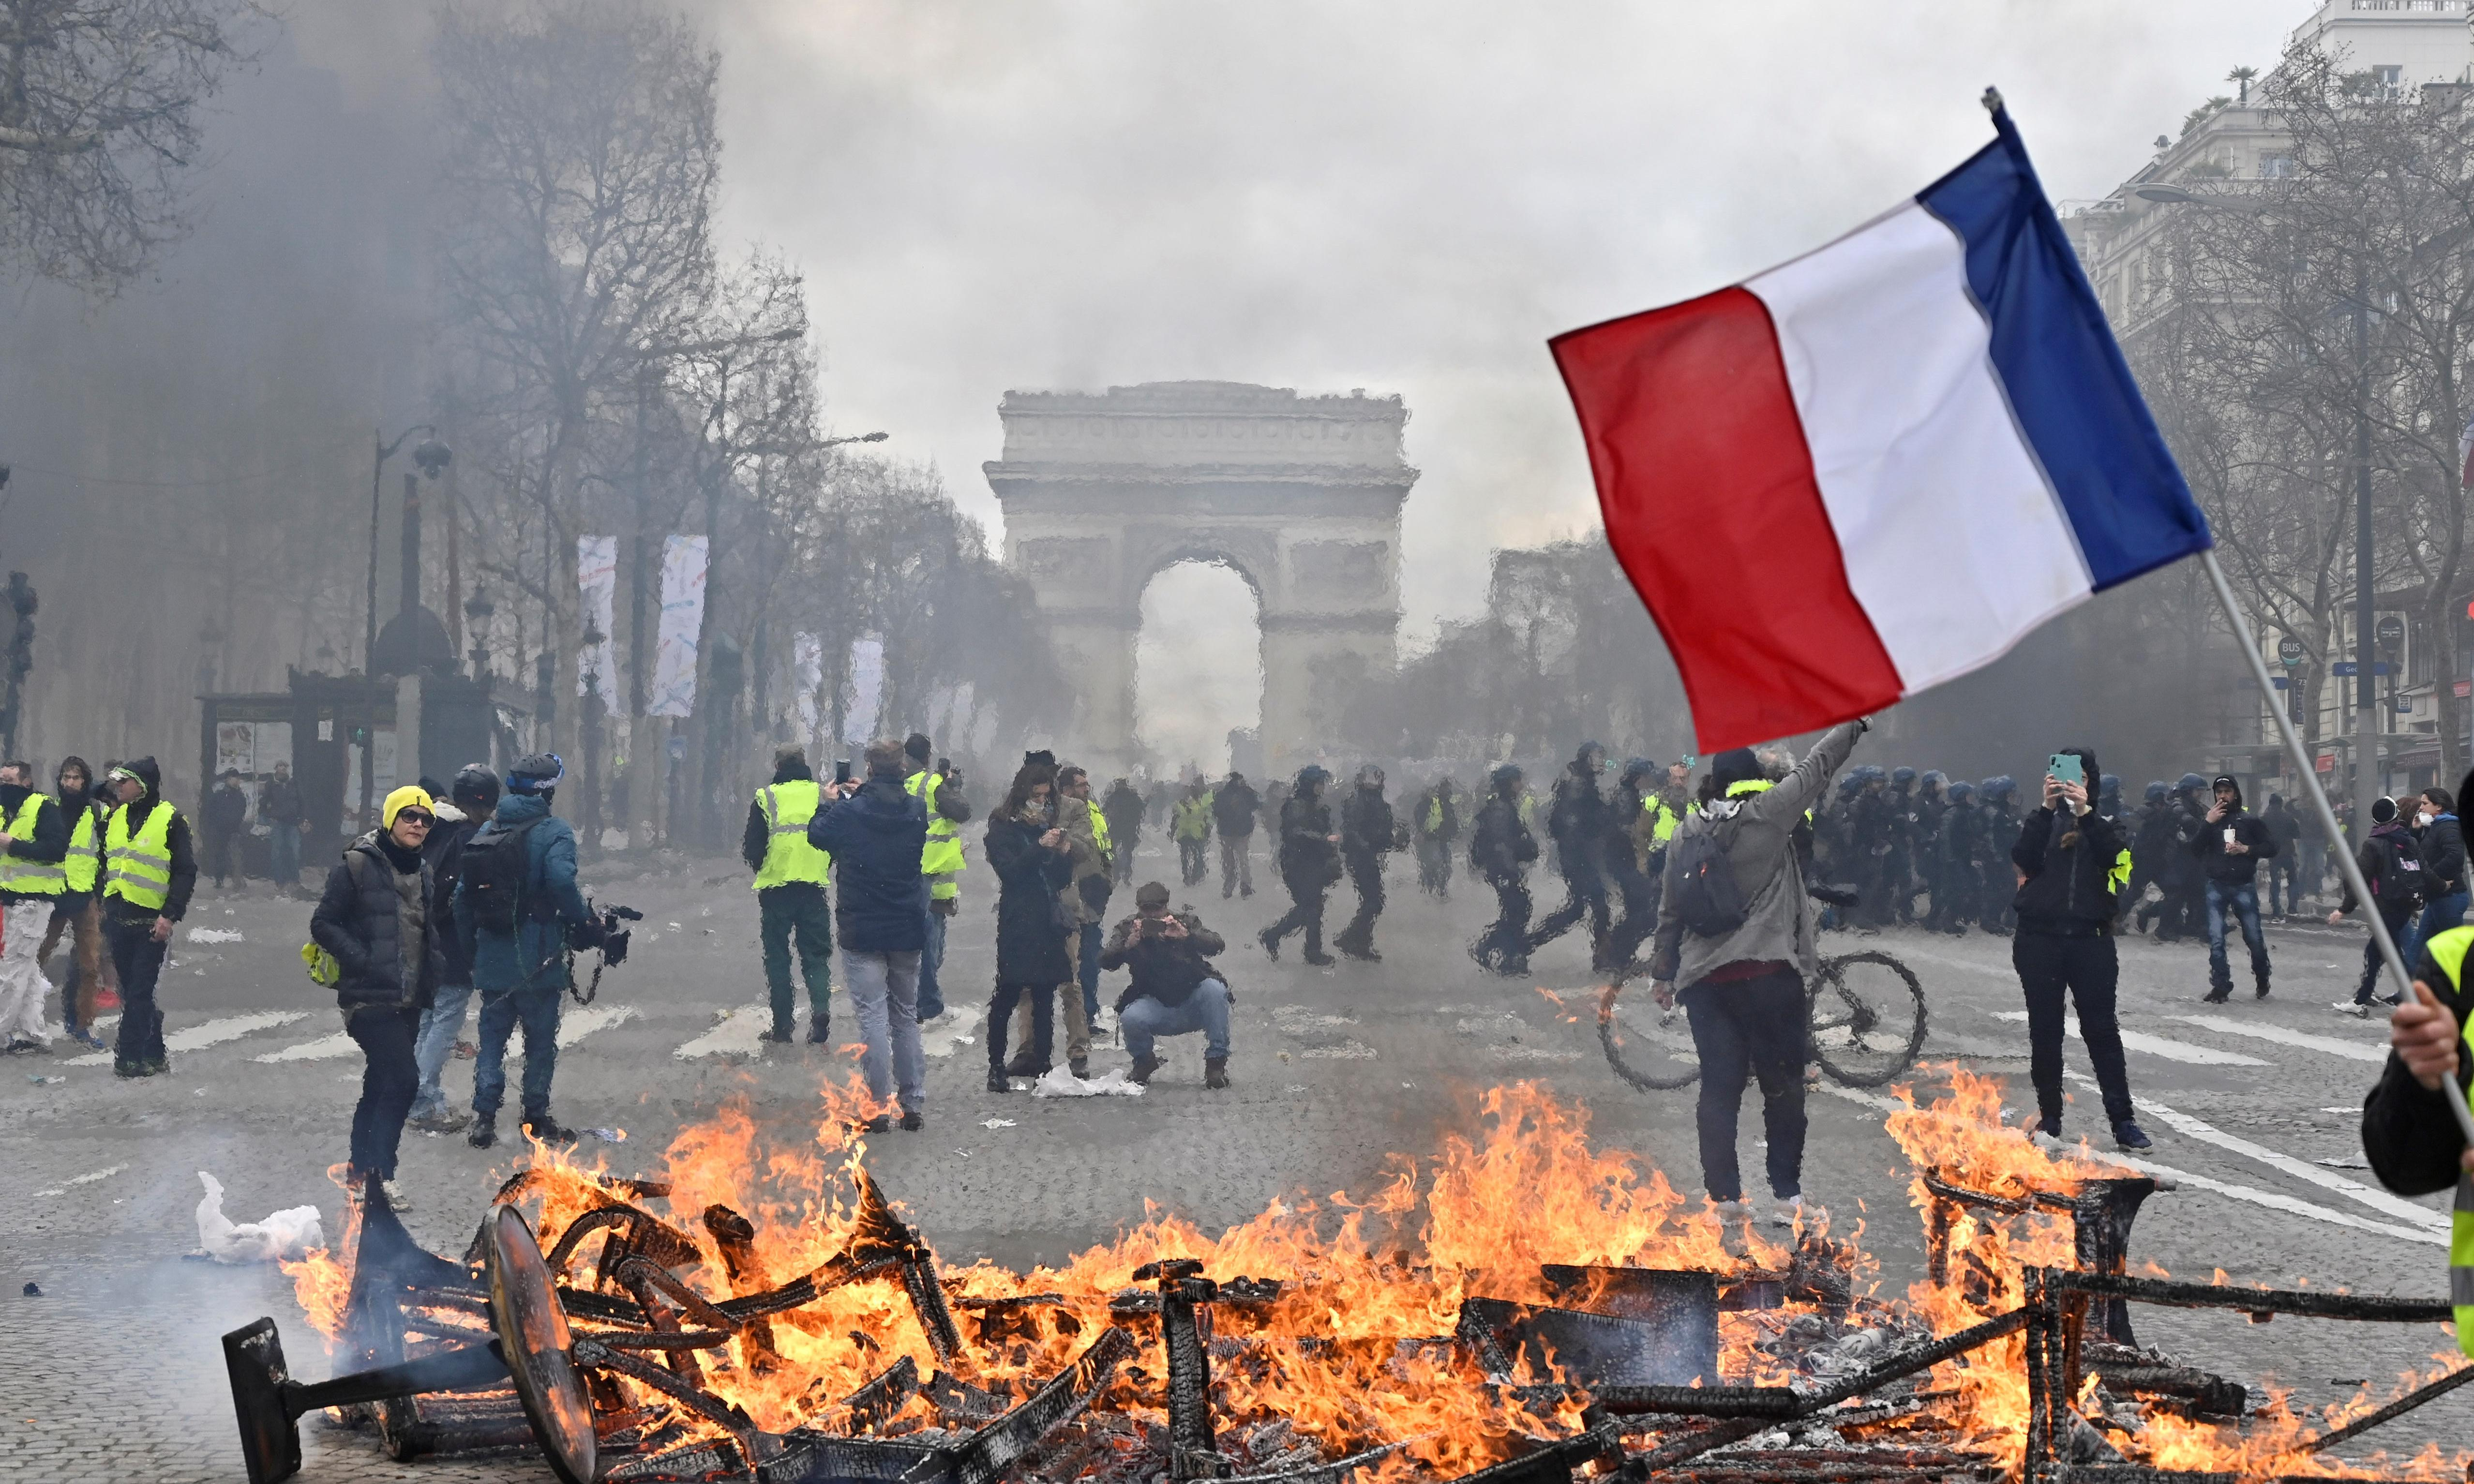 French PM removes police chief and vows to shut down rioters